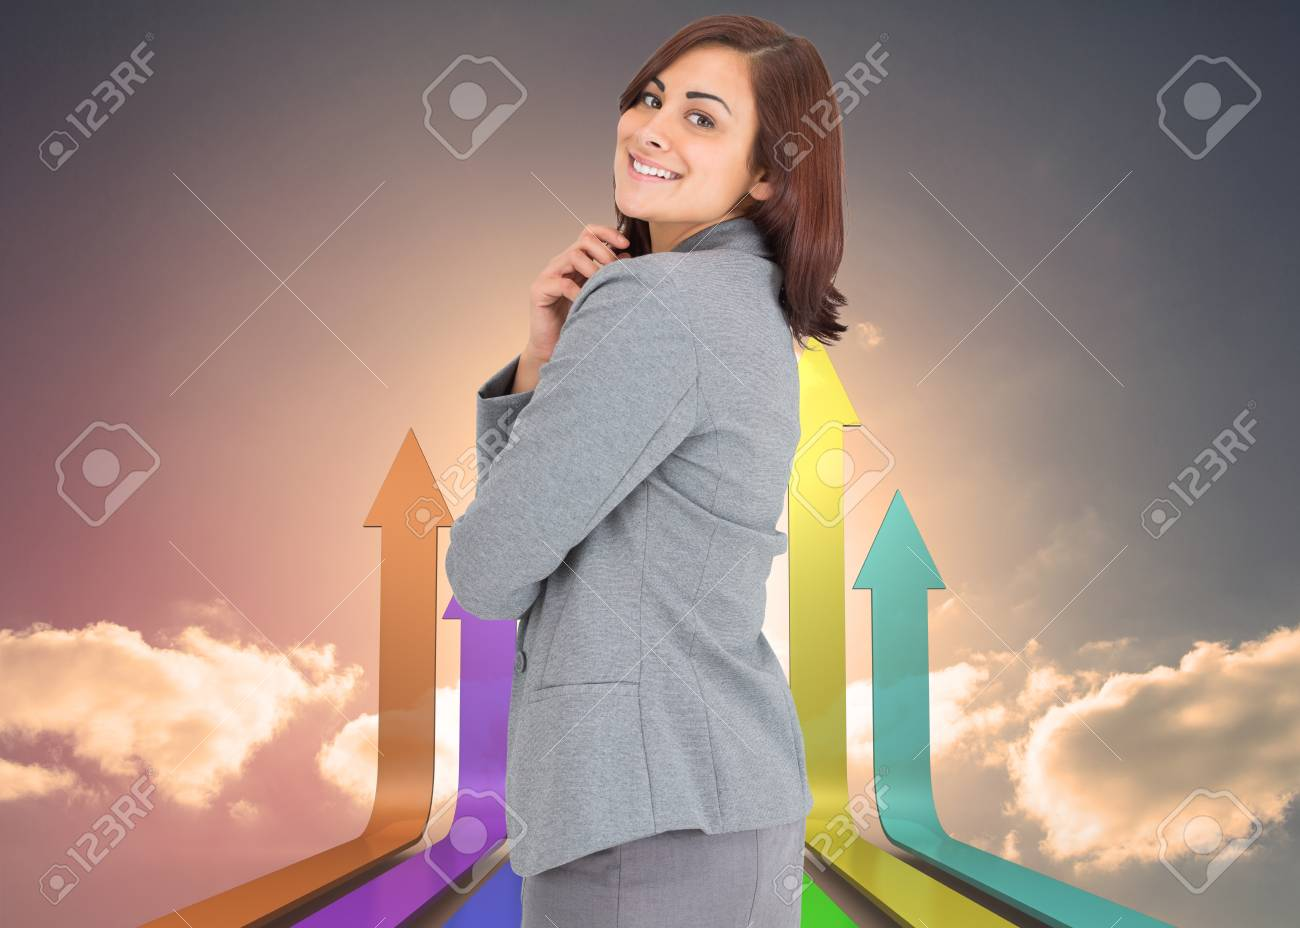 Smiling thoughtful businesswoman against digitally generated room Stock Photo - 26795432